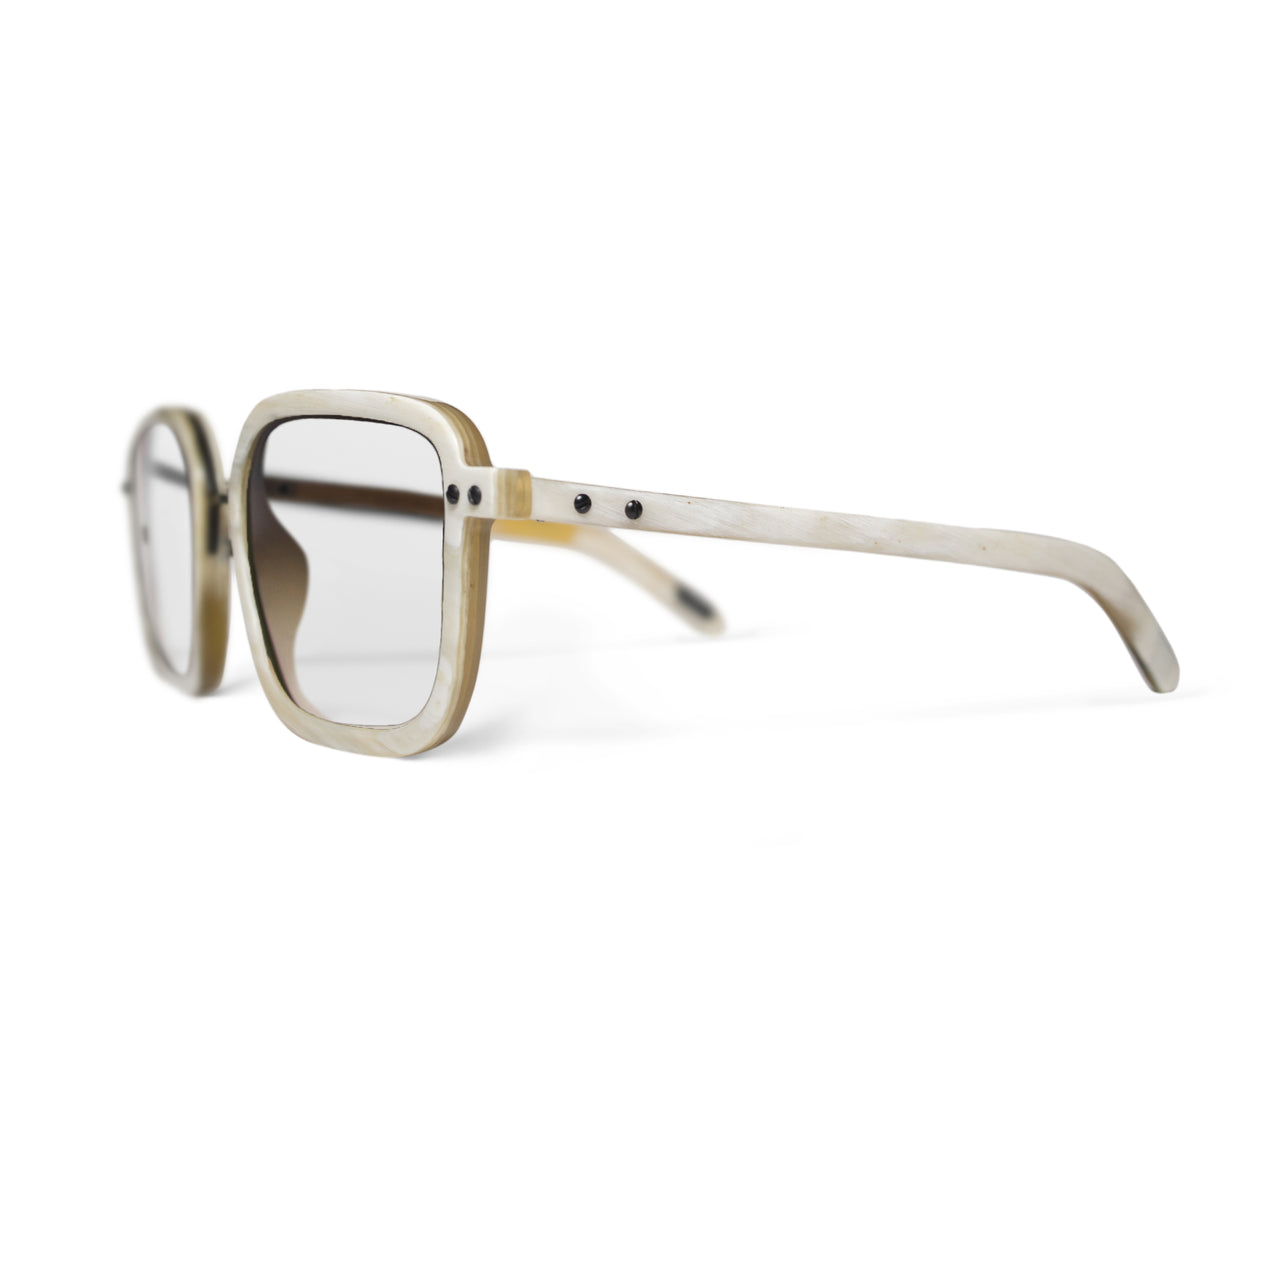 Horn. Oxen. Clear Lens - BLYSZAK eyewear eyewear - eyewear, optical, sunglasses